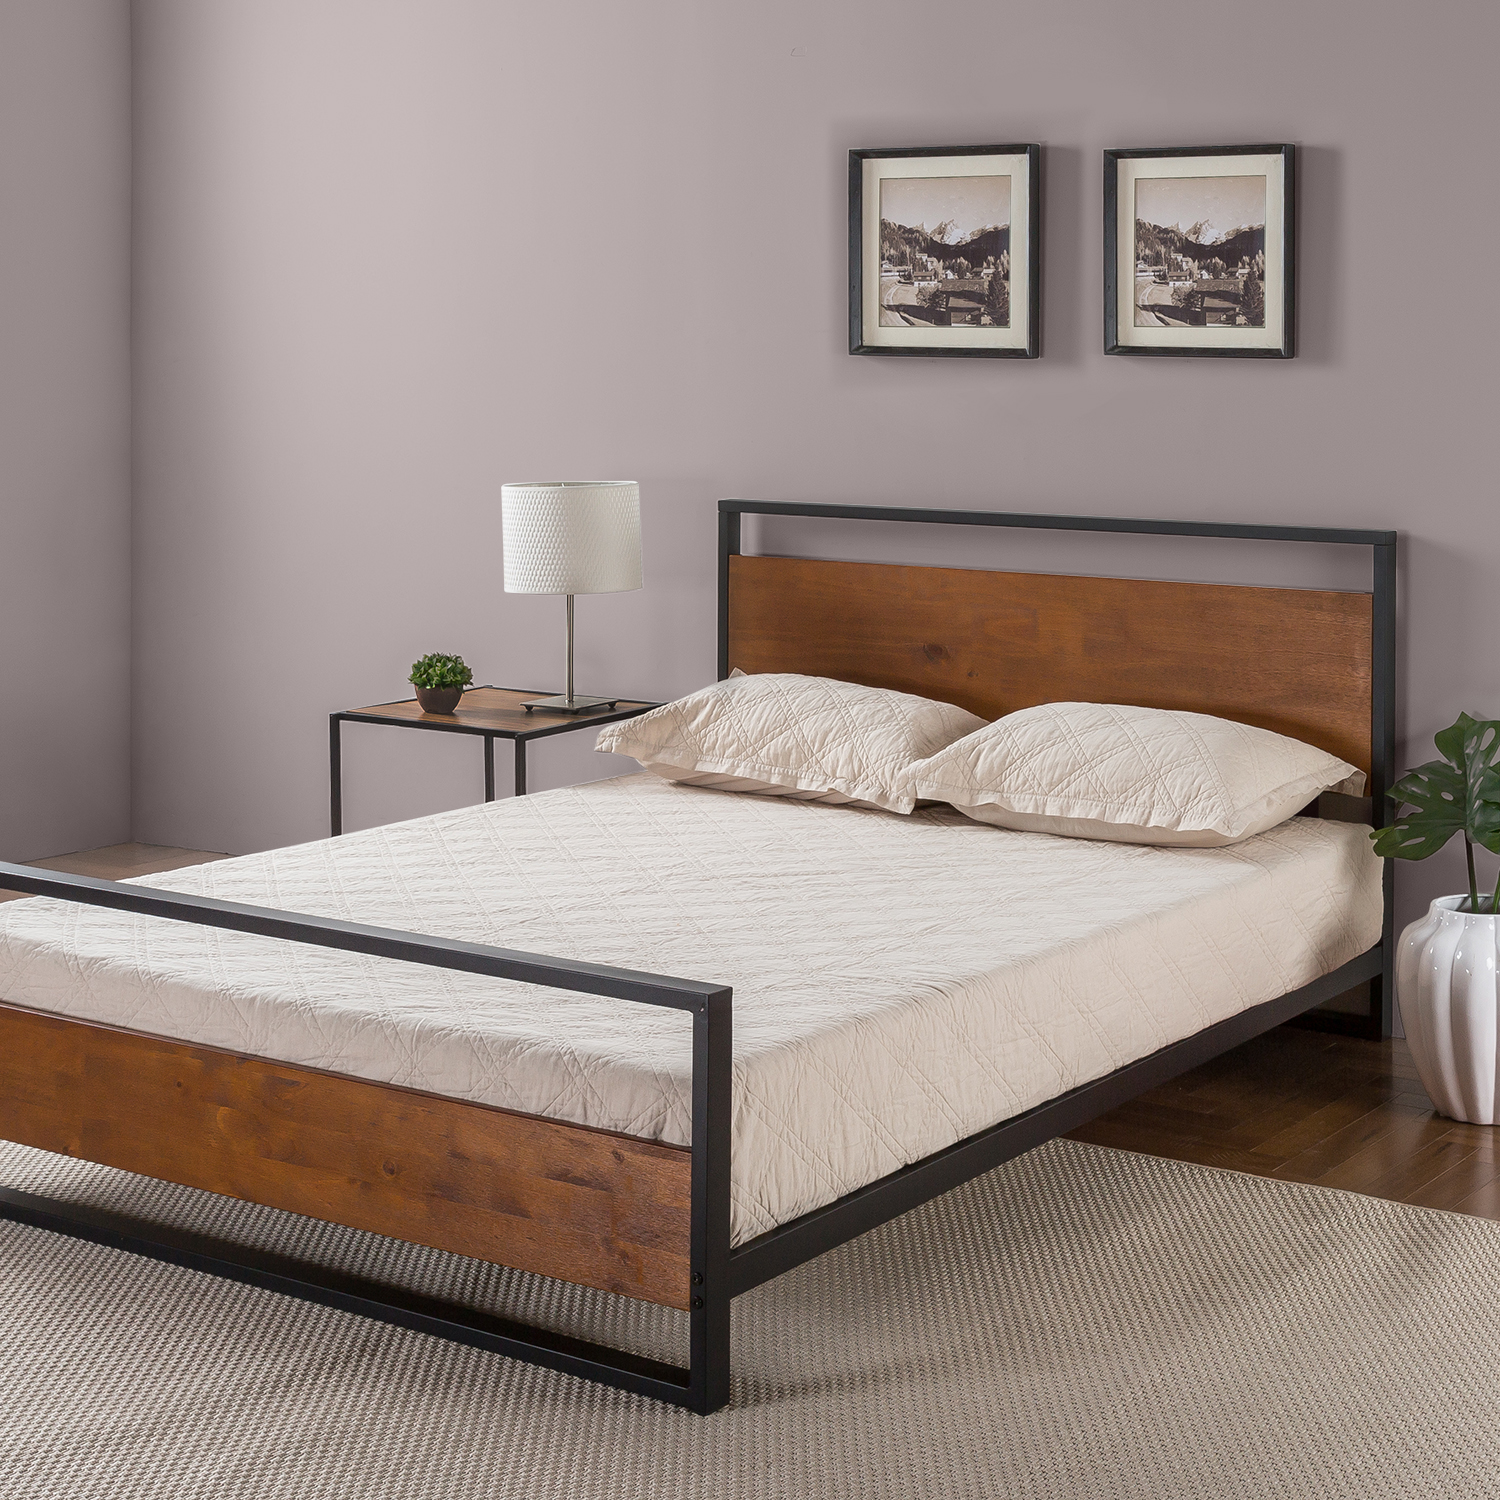 Zinus Ironline Platform Bed with Headboard and Footboard by ZINUS